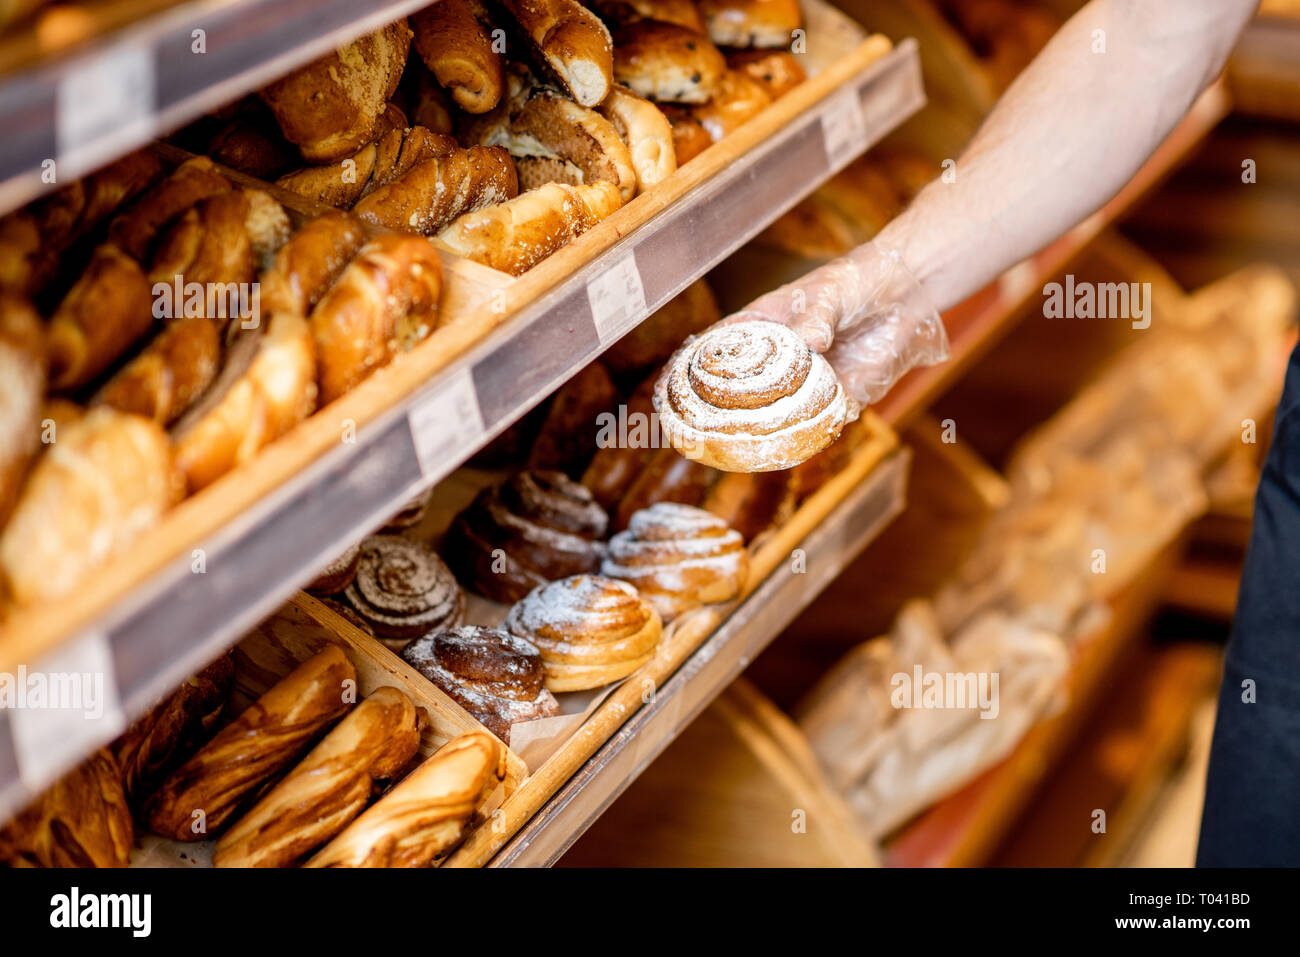 Taking sweet bun from the shelves in the supermarket, close-up view - Stock Image